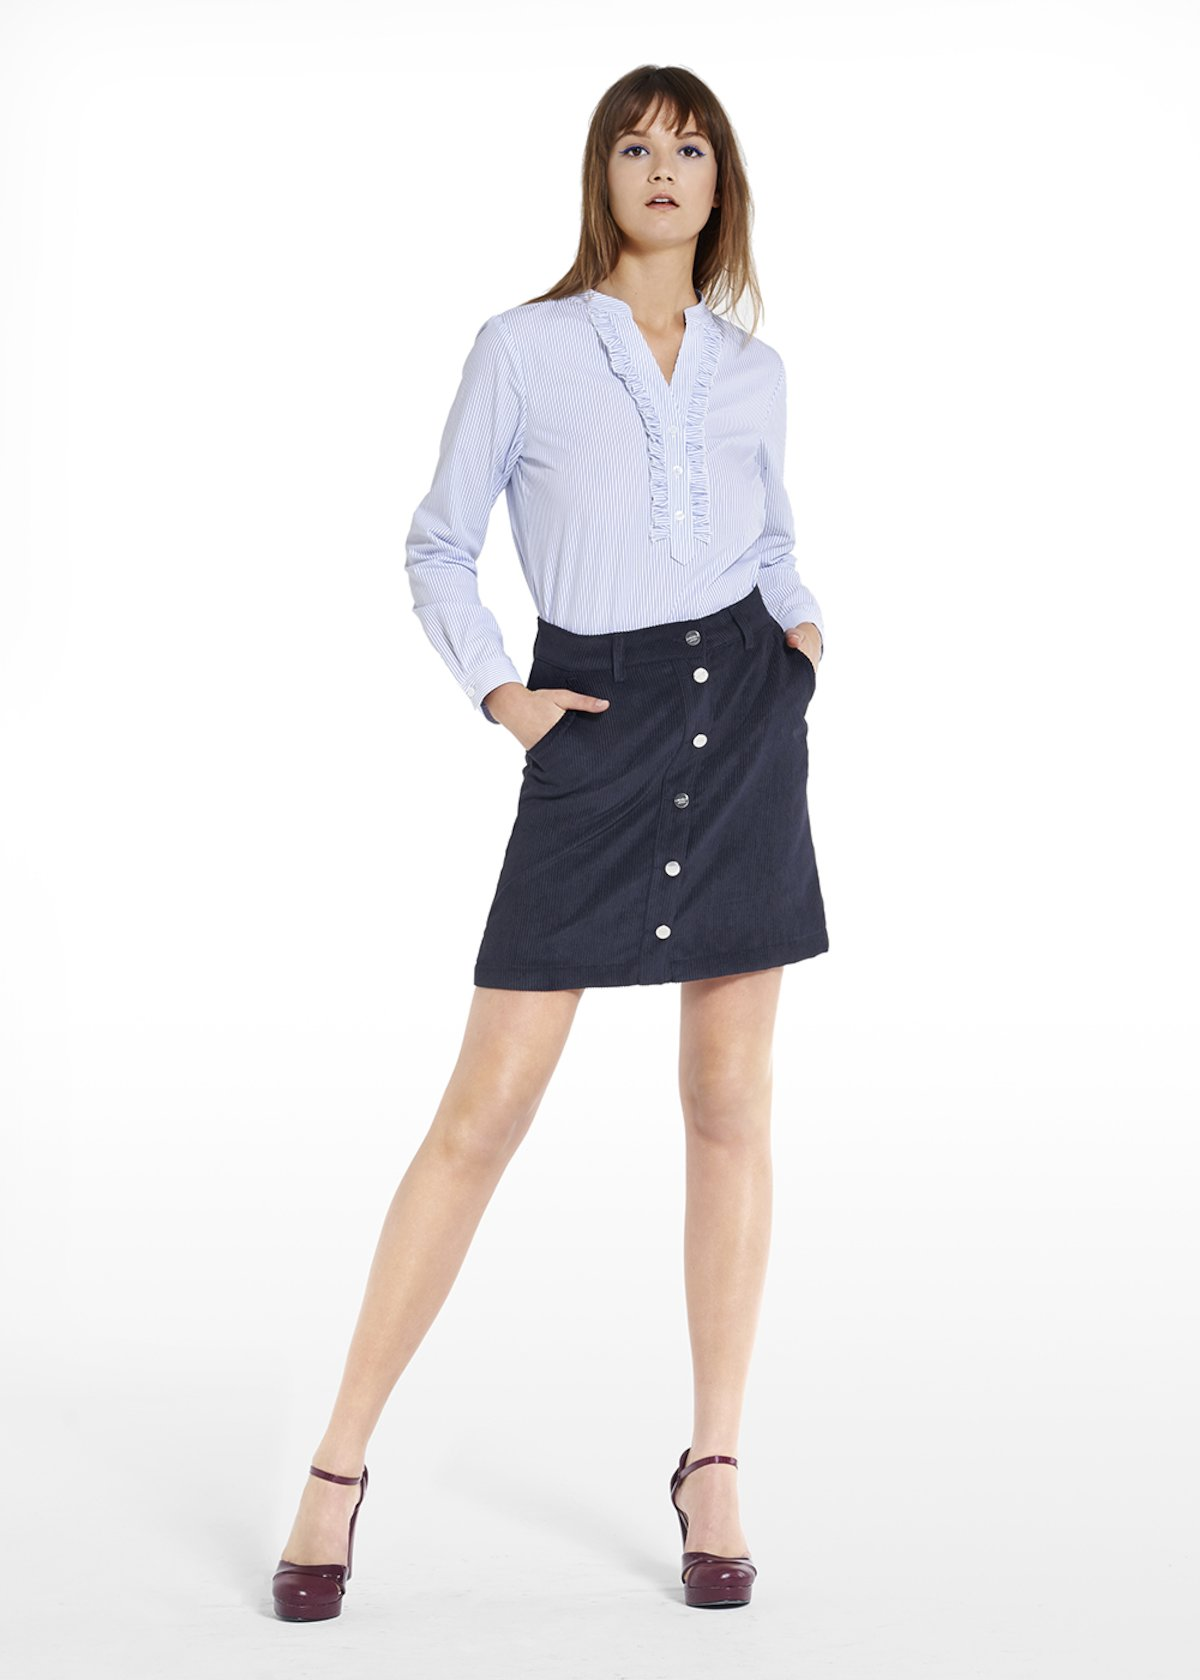 Skirt Grisell in velvet with buttons on the front - Medium Blue - Woman - Category image